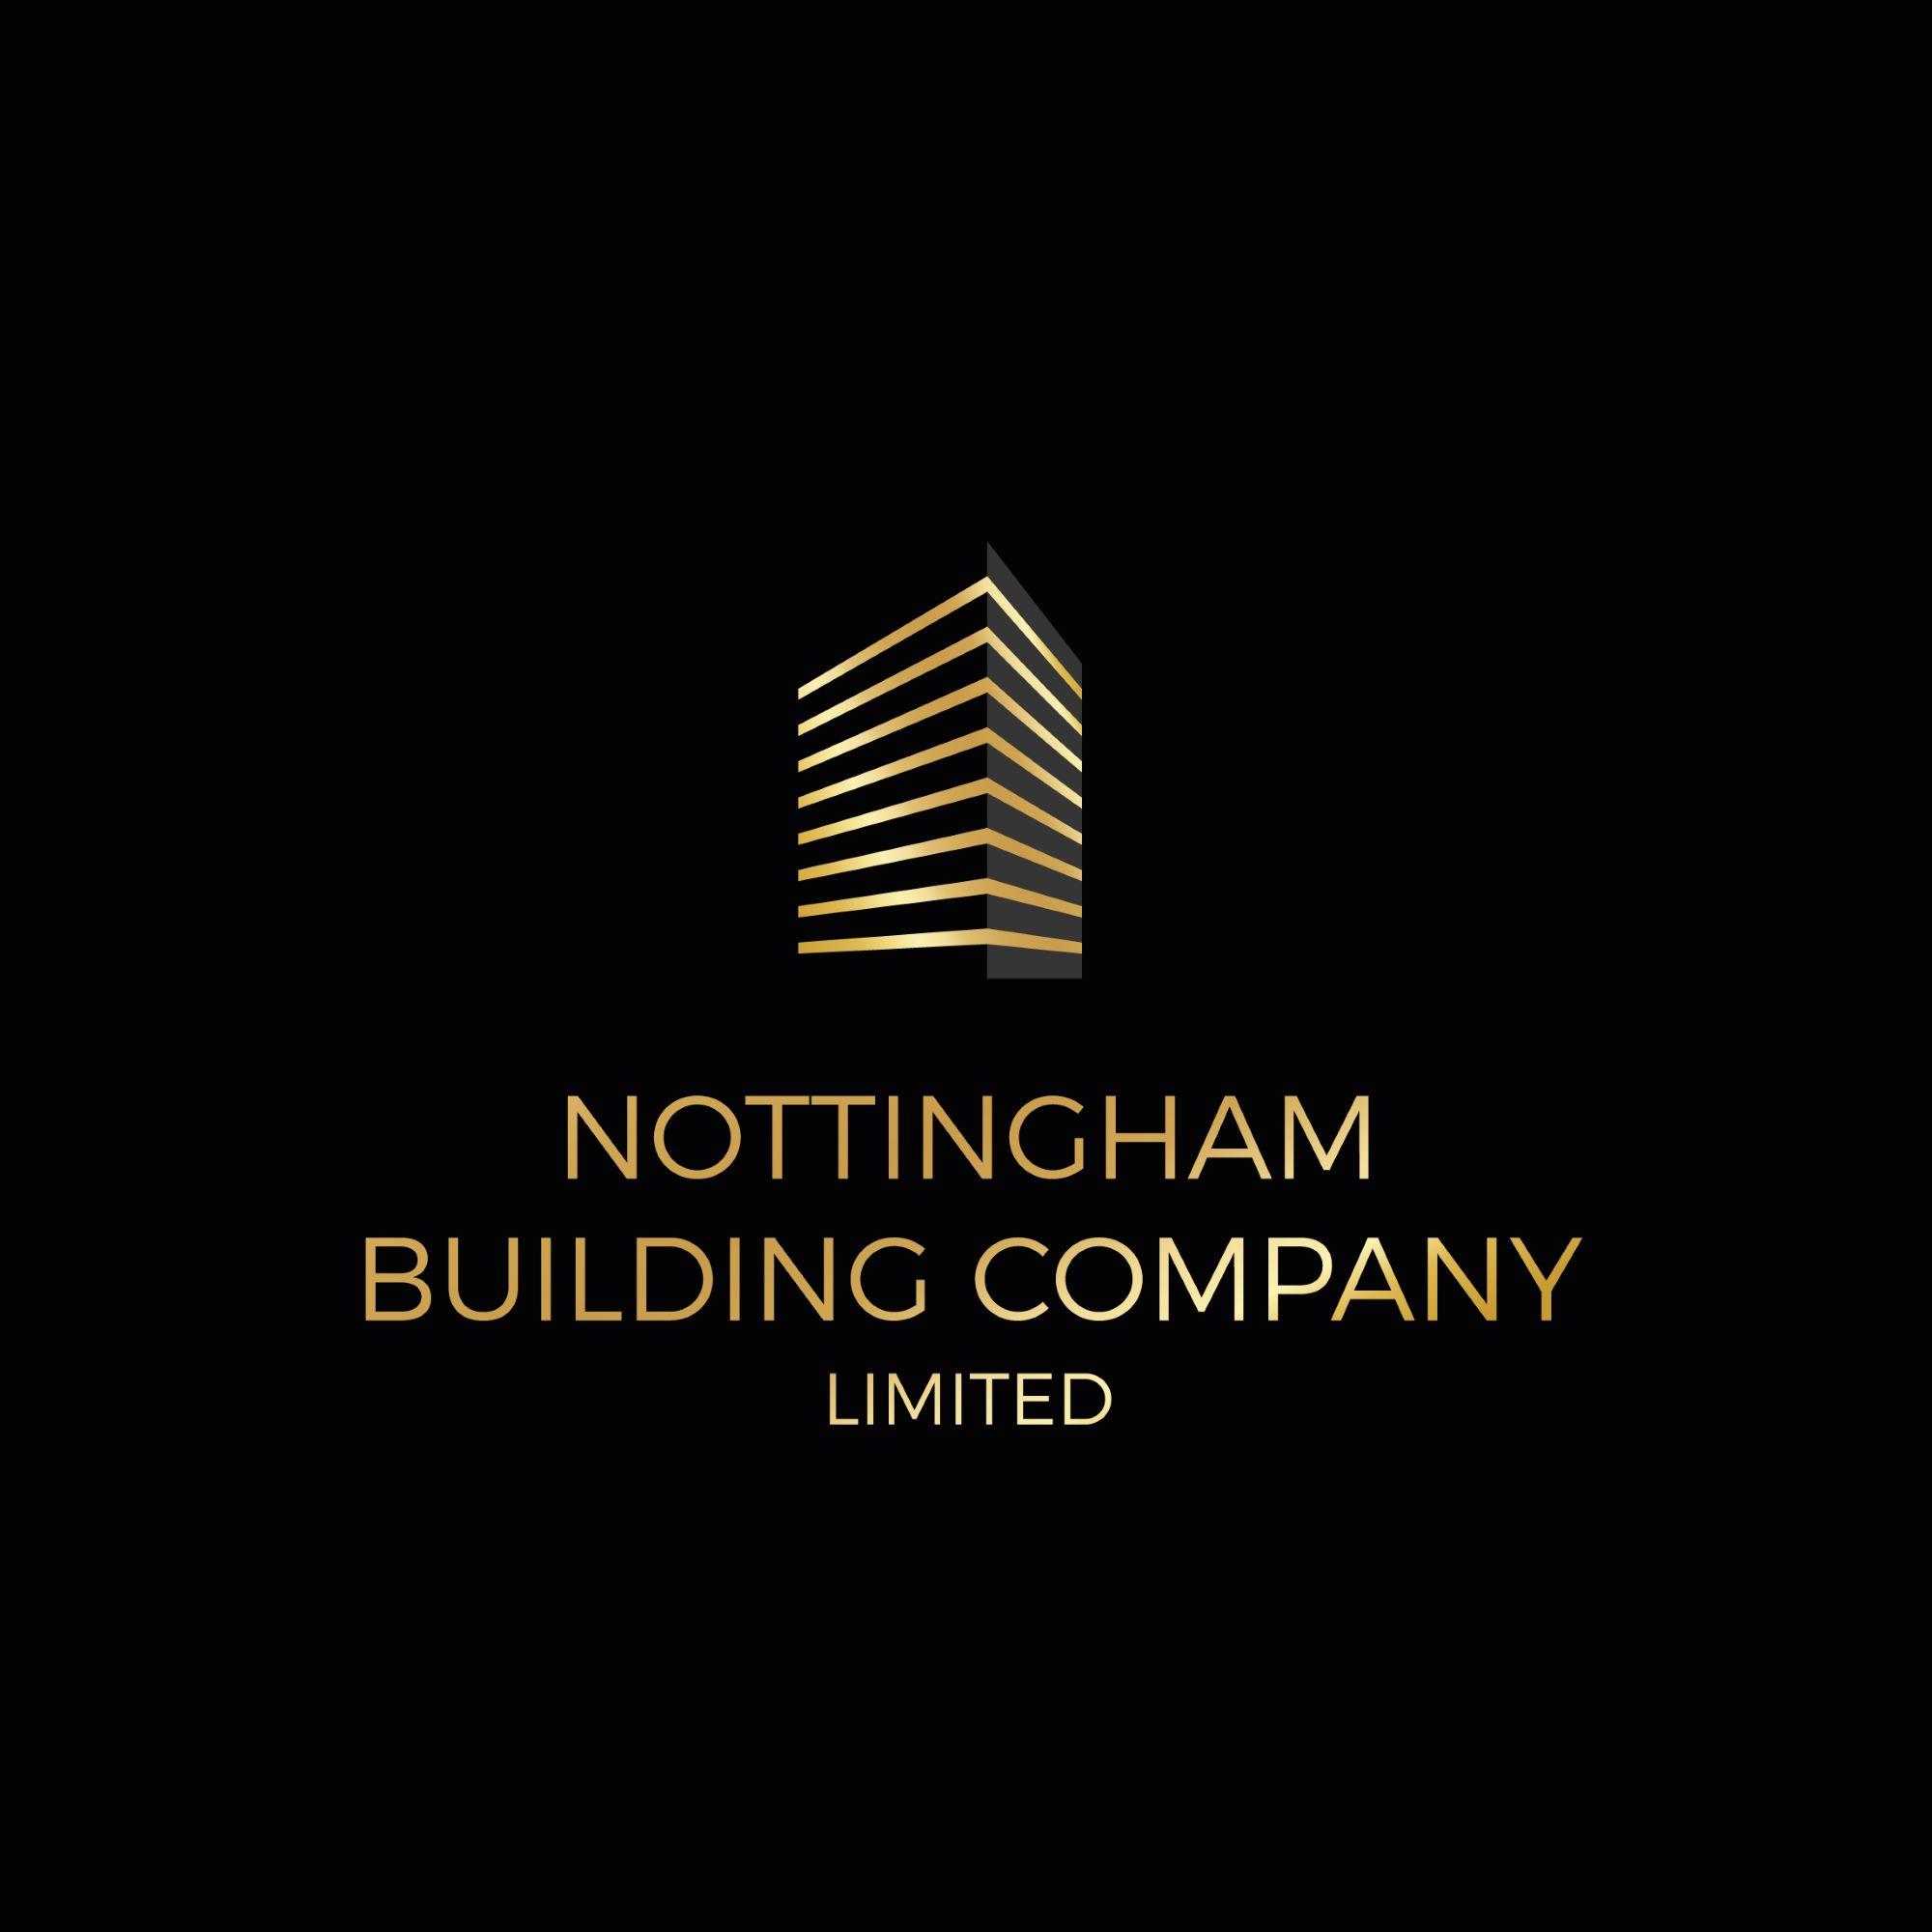 Main photo for Nottingham Building Company Limited